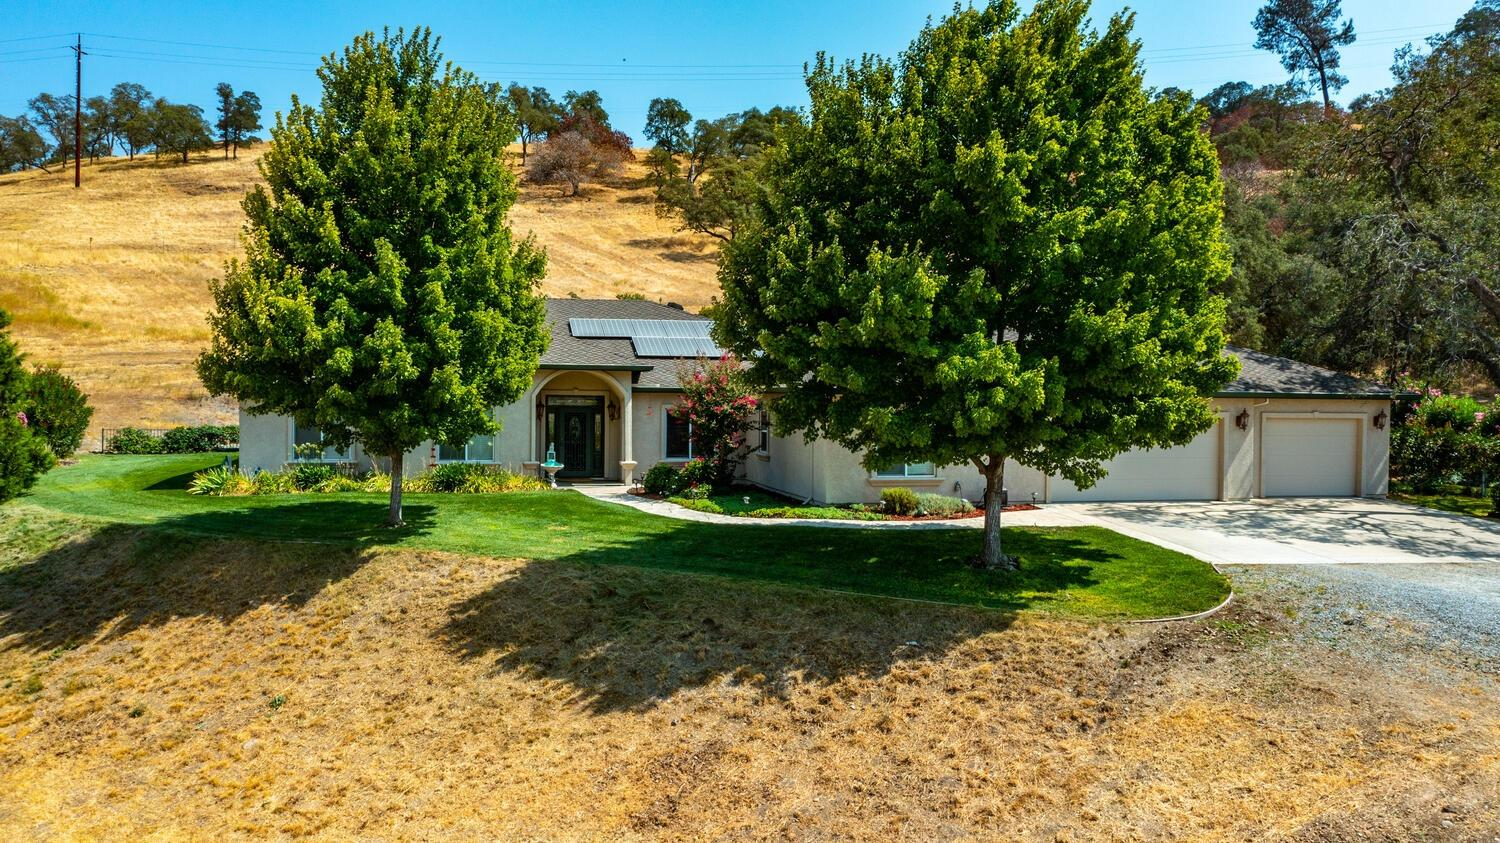 Photo of 3520 Paloma Road, Valley Springs, CA 95252